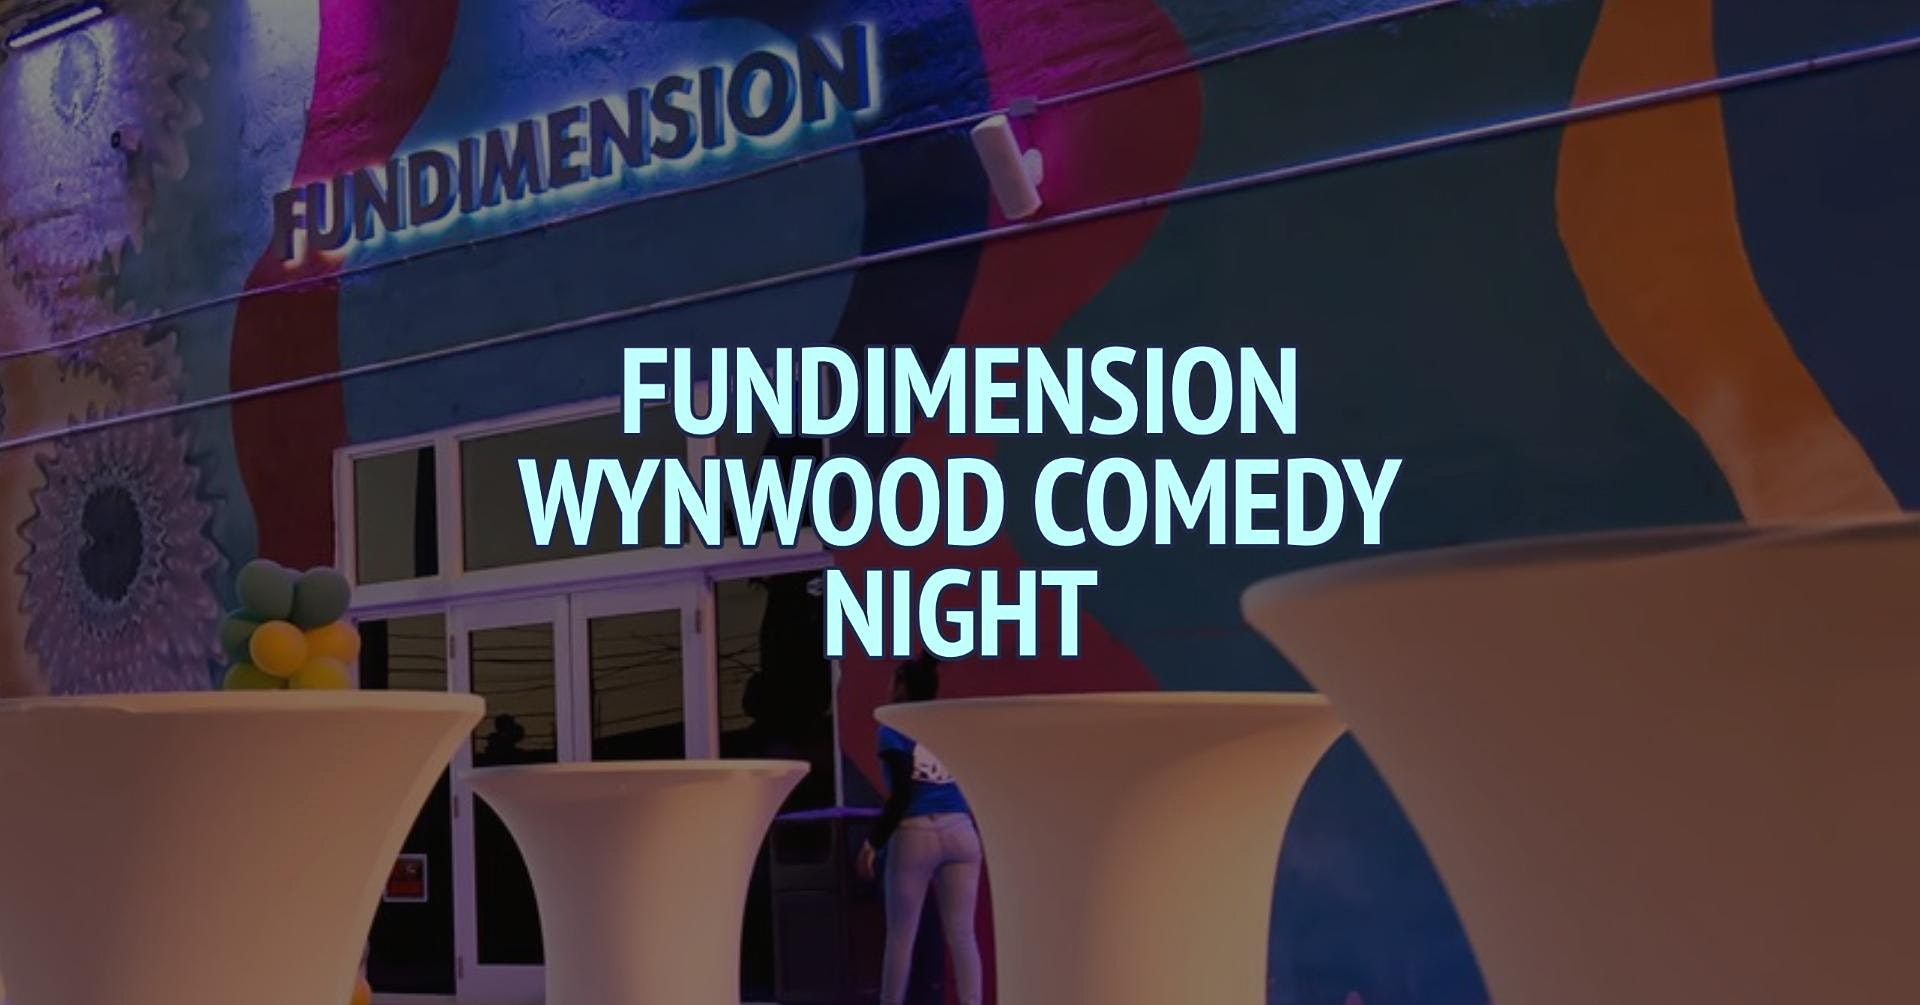 Fundimension comdy night